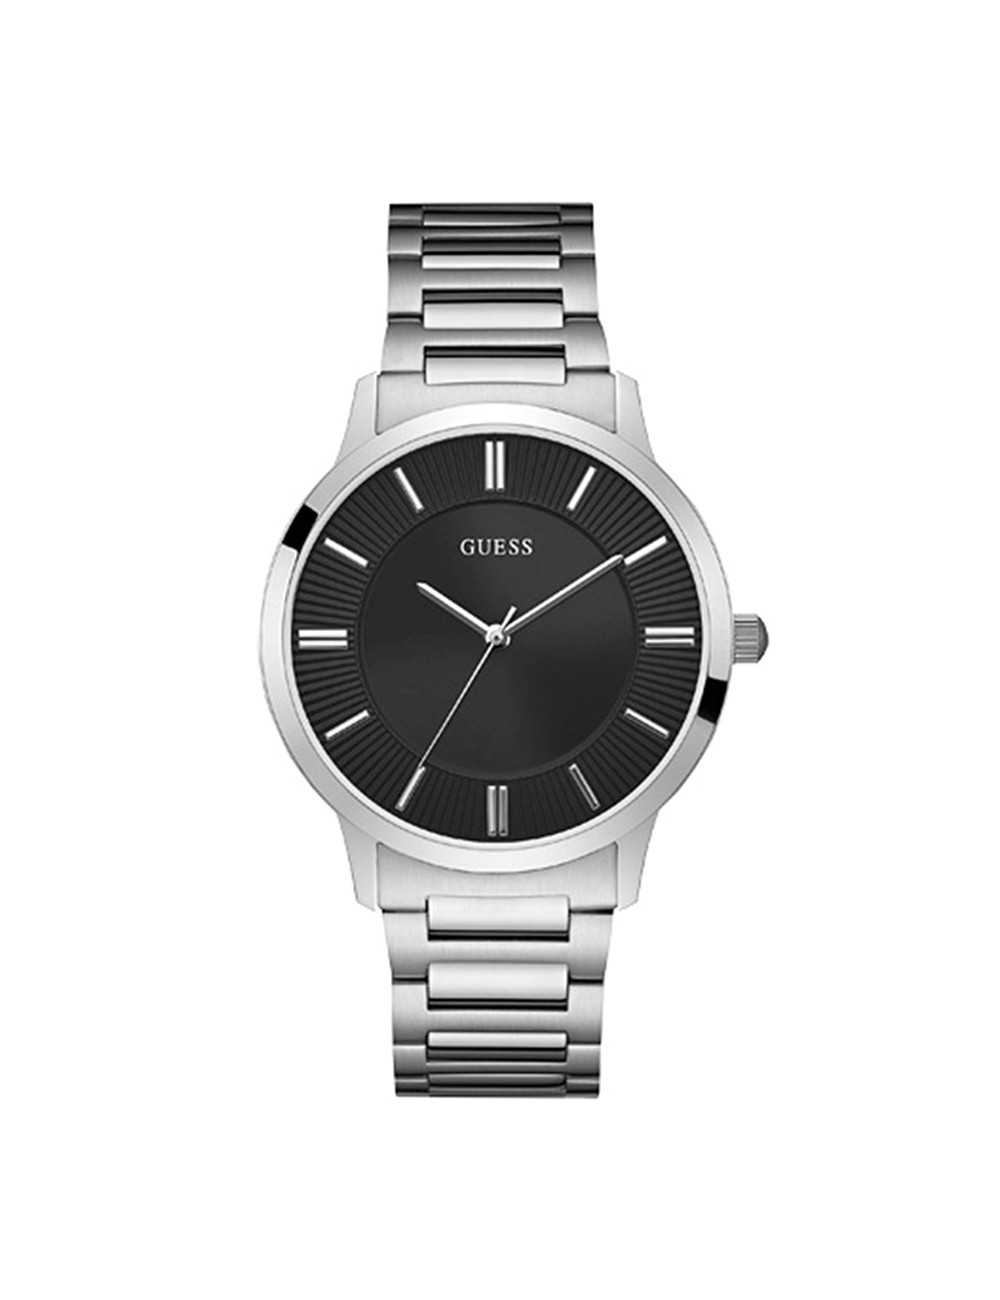 Guess Escrow W0990G1 Mens Watch